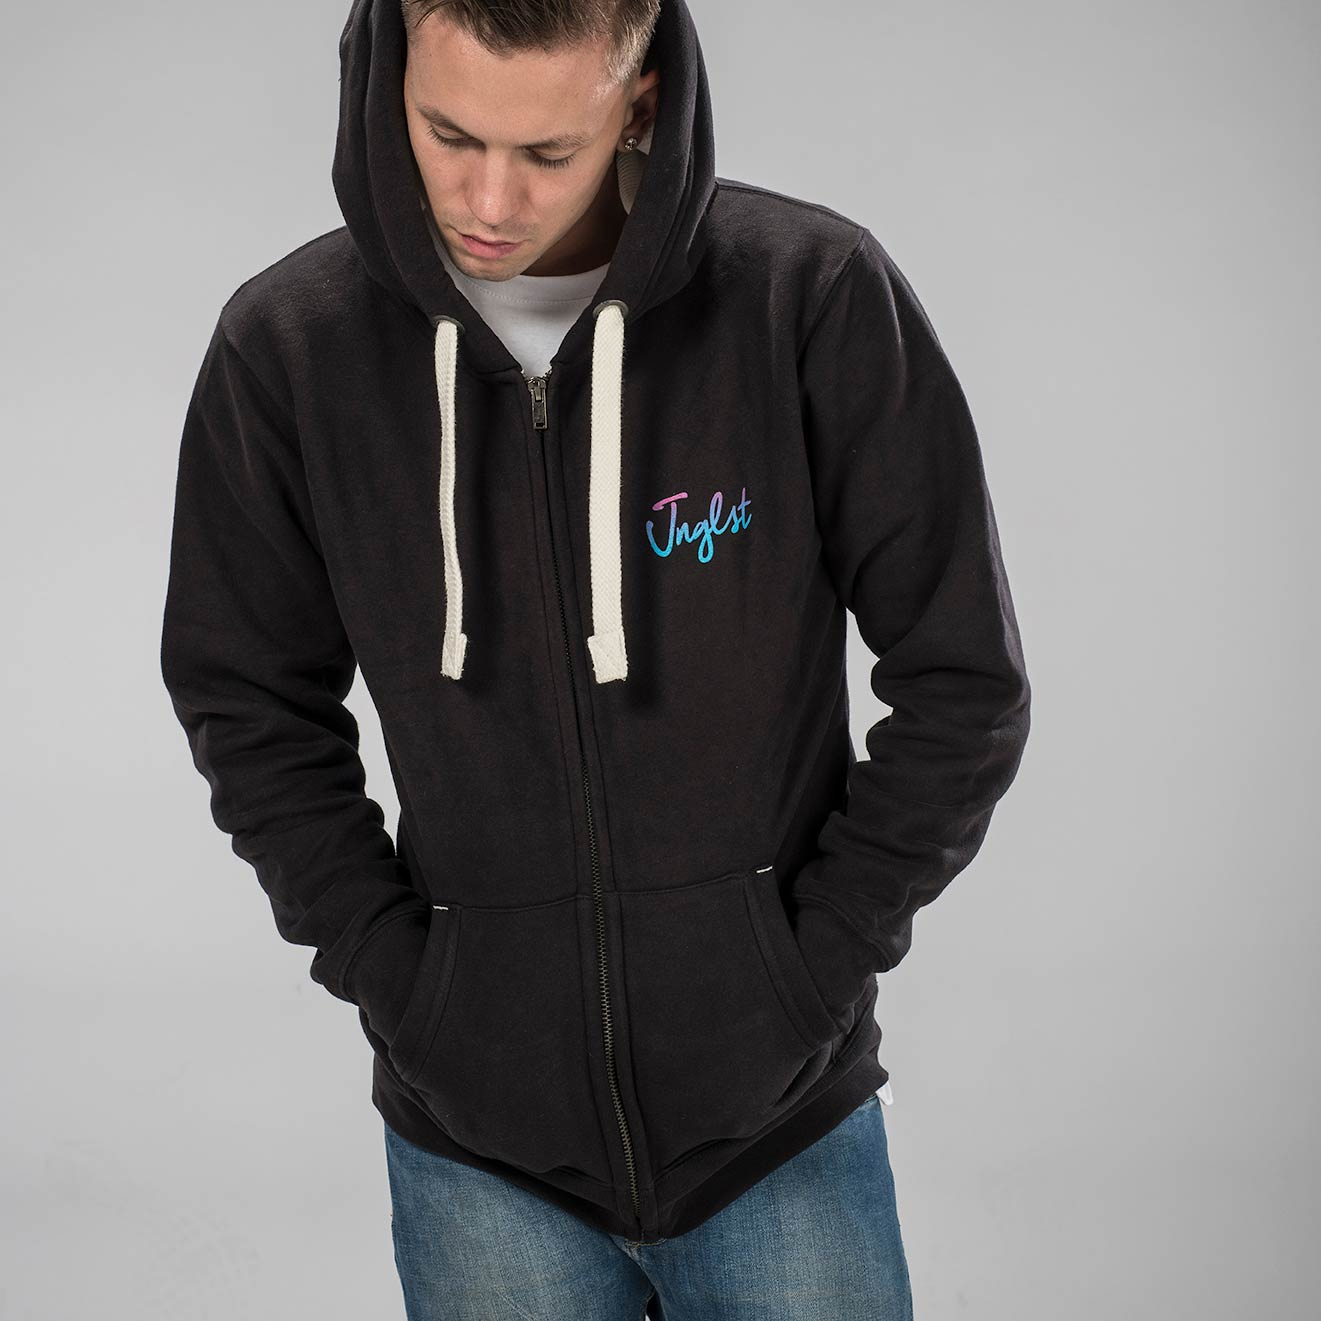 Junglist Fader Hoodie soft and Long lasting